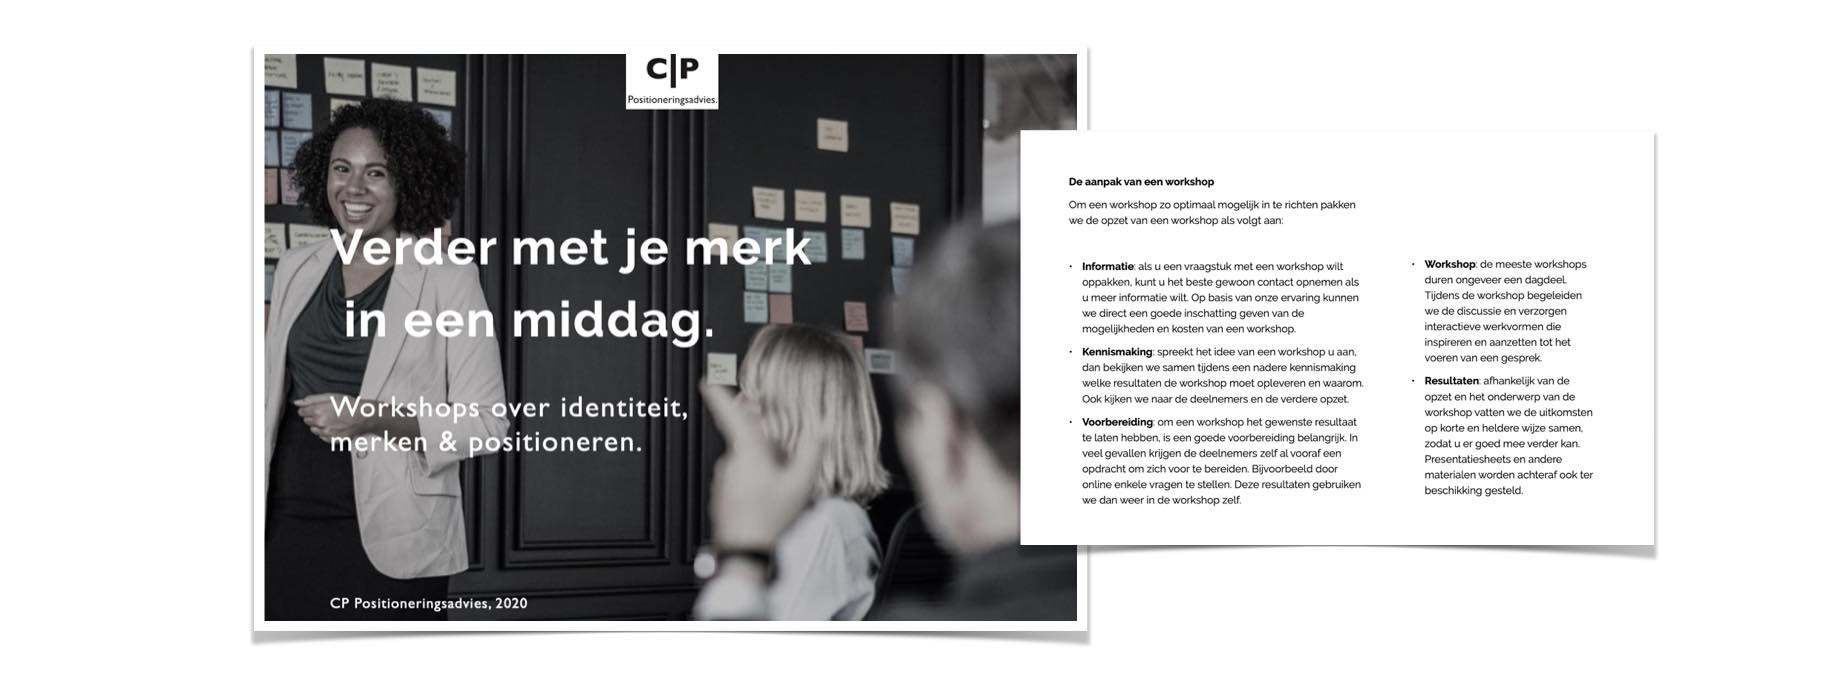 Brochure beeld aanvragen over Workshops positioneren en presentaties over merken